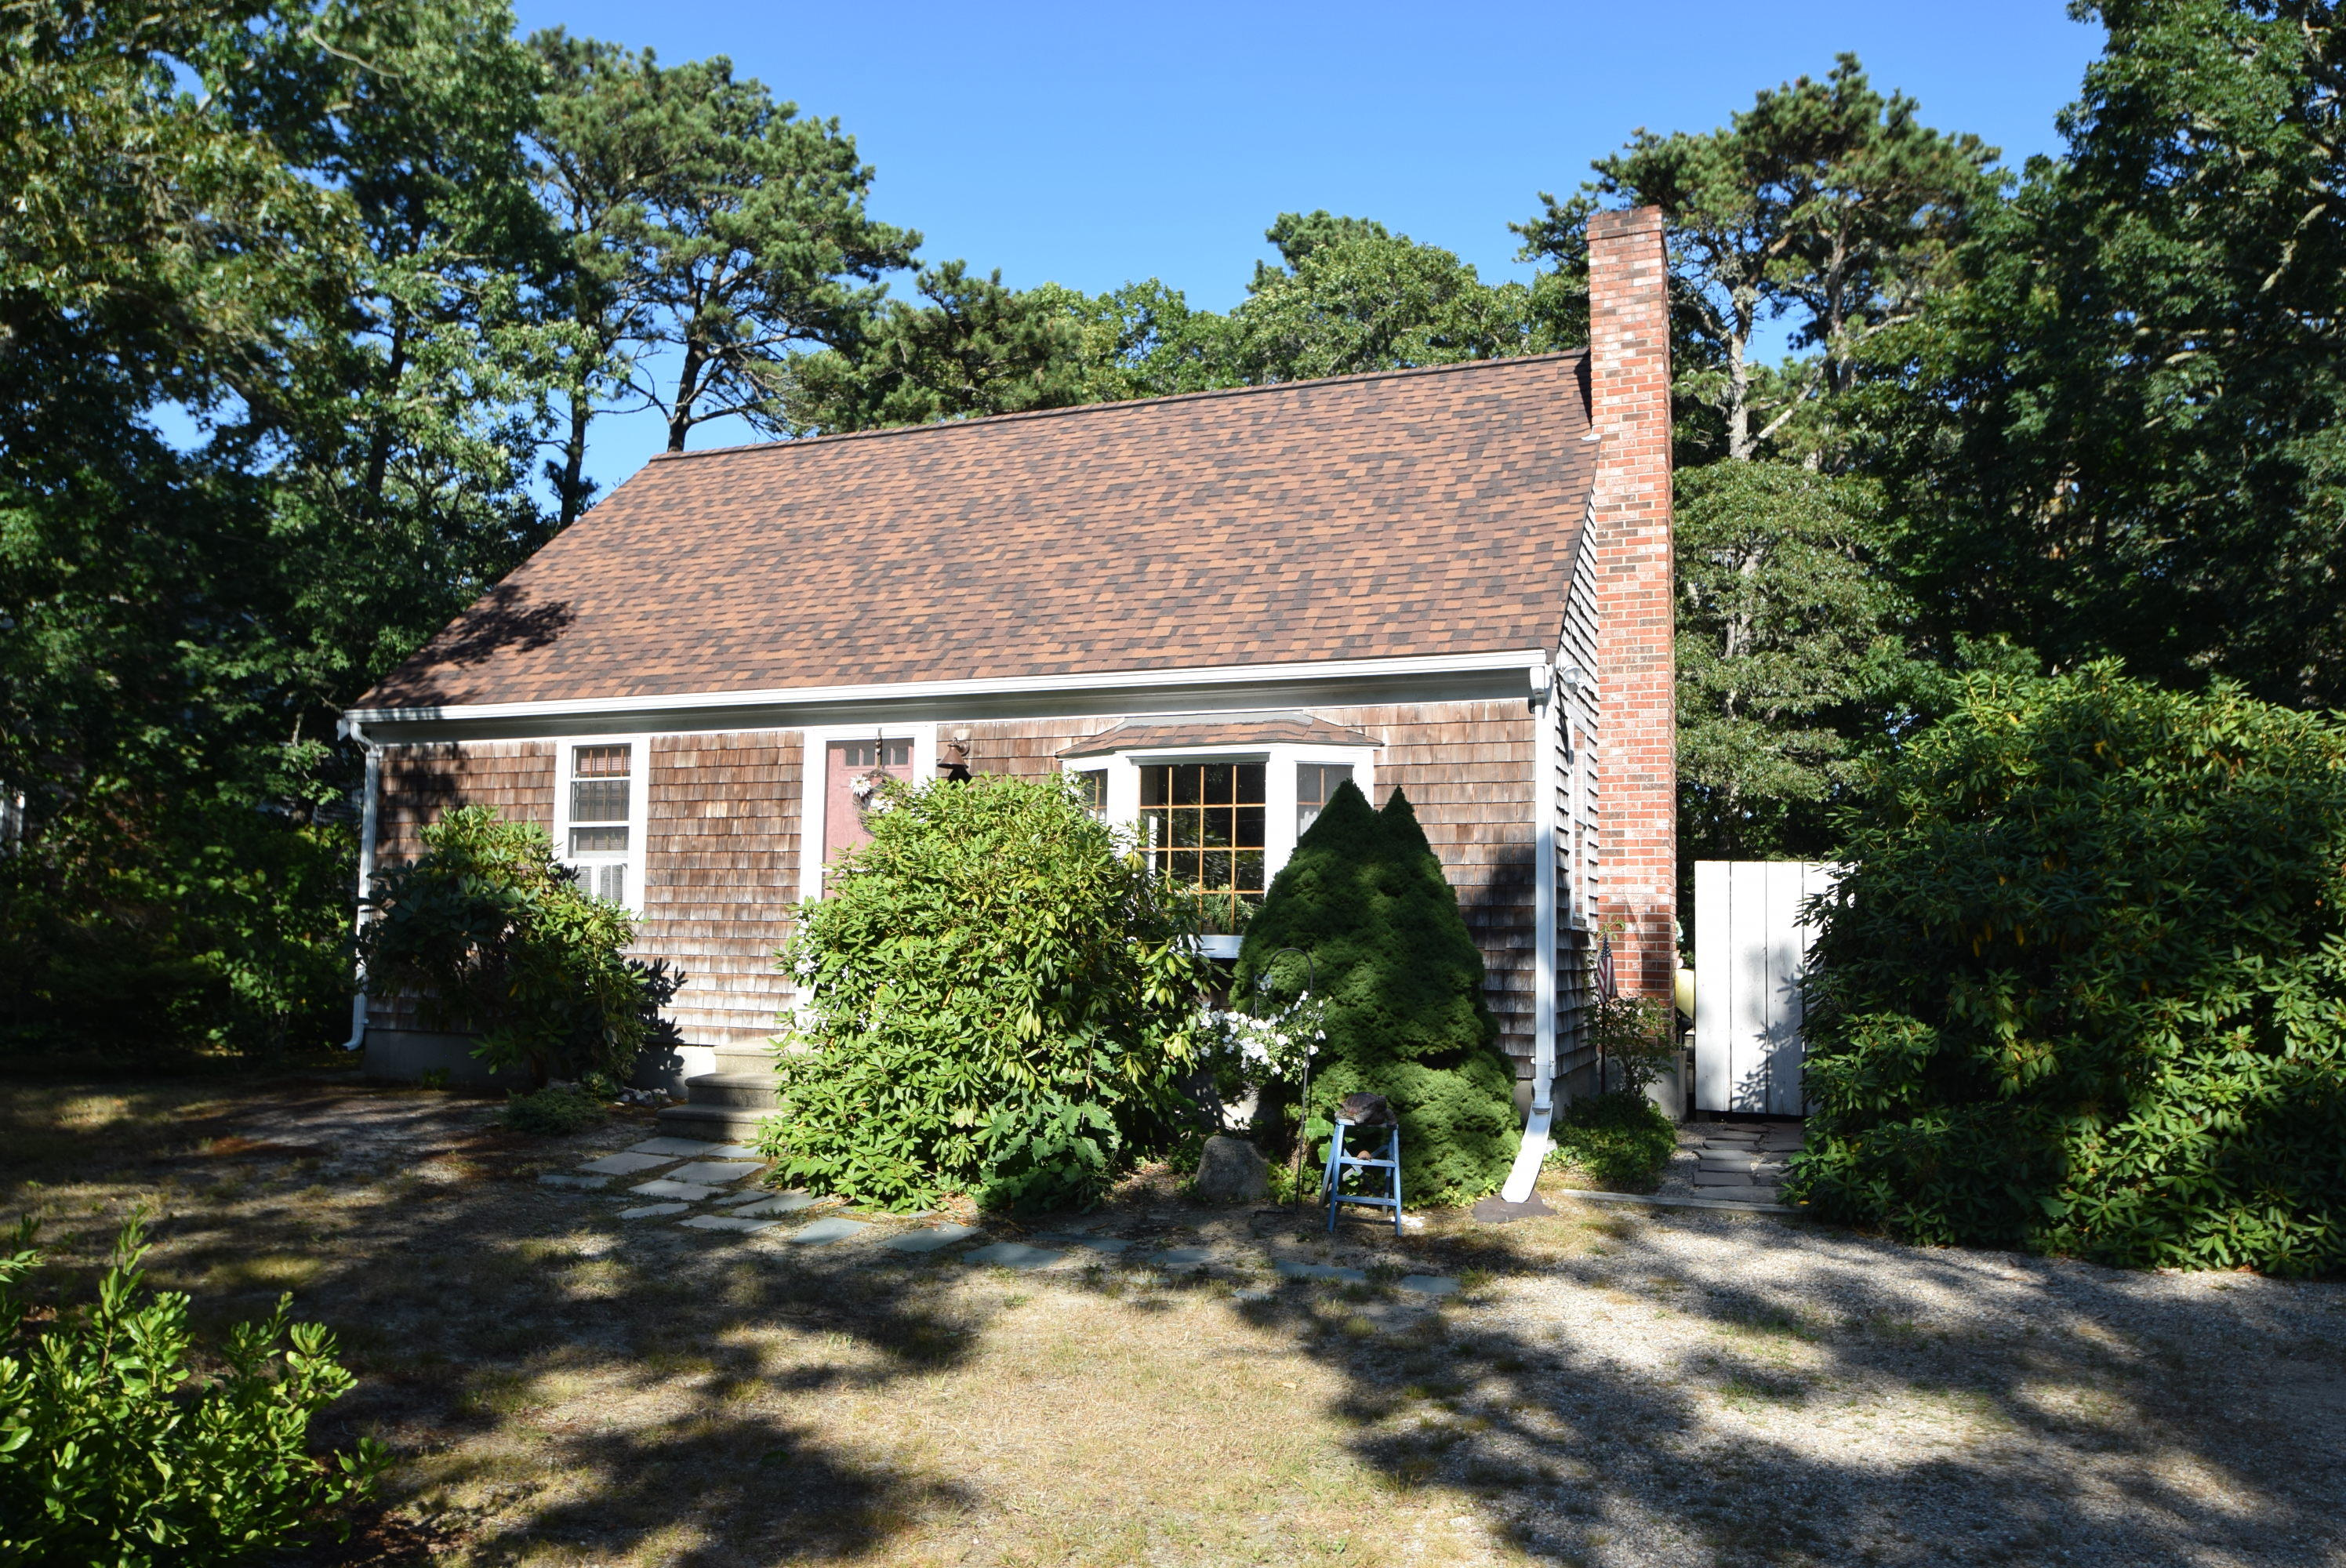 243 Commons Way, Brewster MA, 02631 sales details